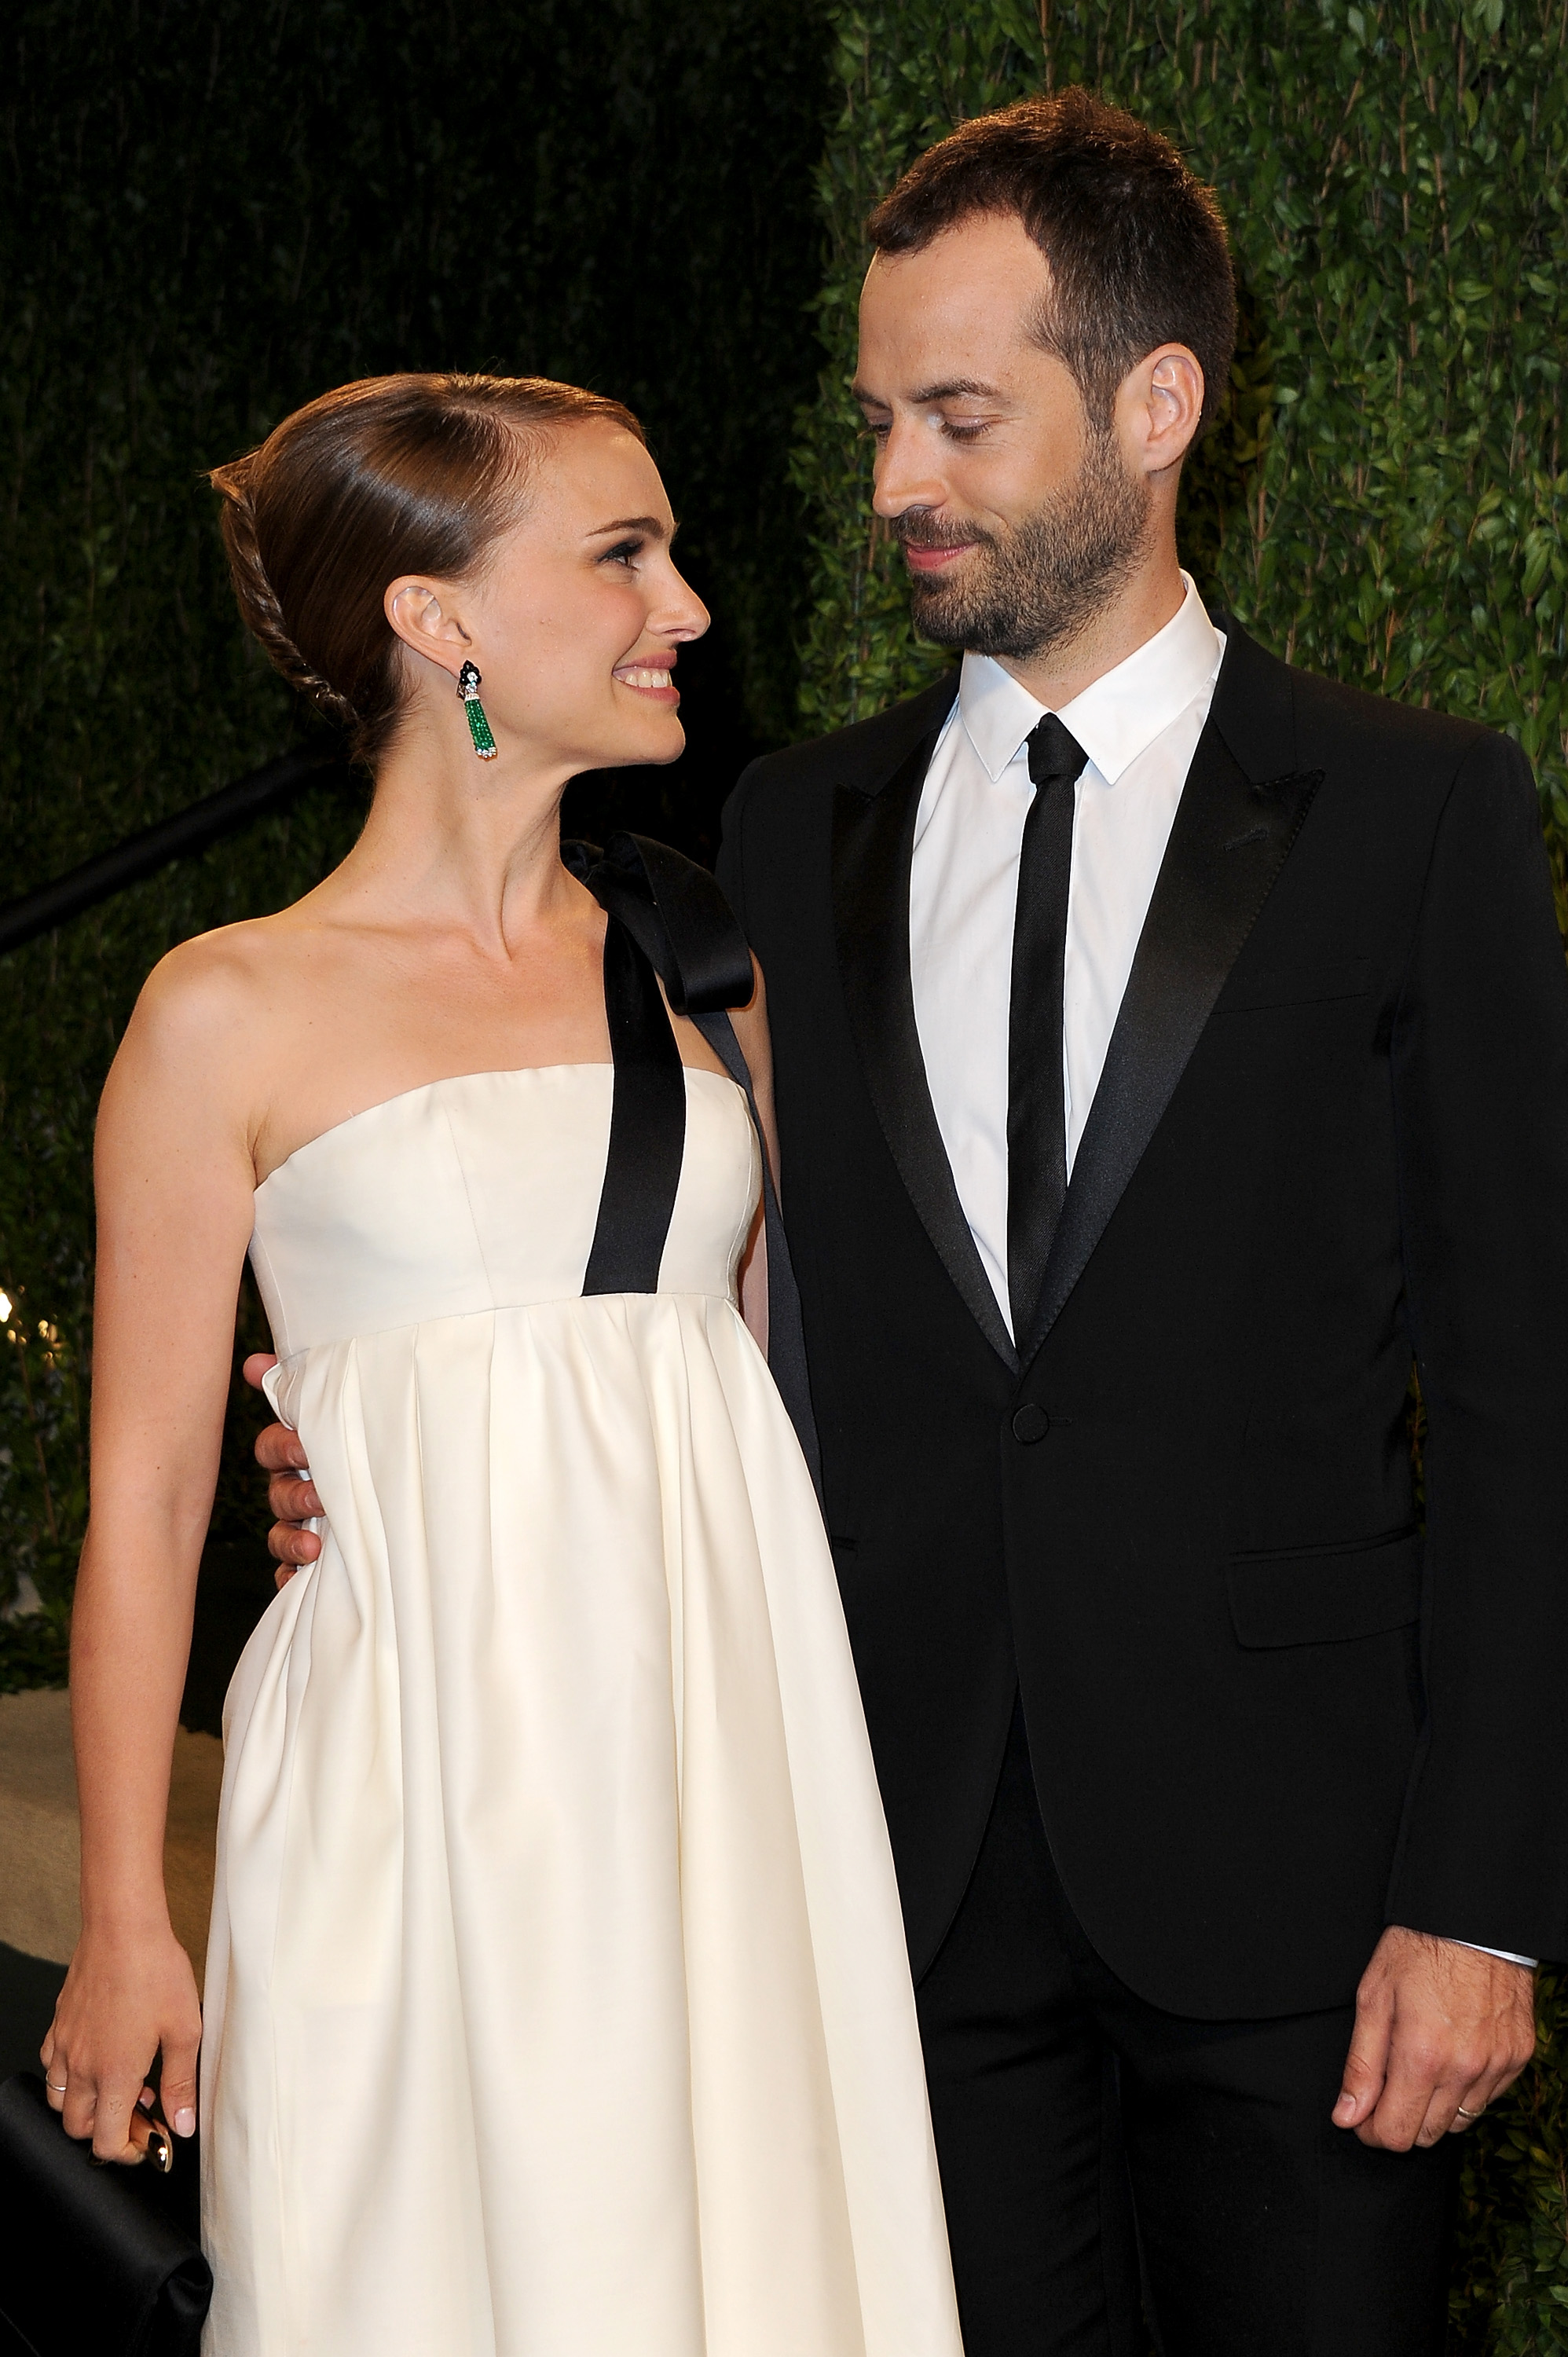 Natalie Portman and Benjamin Millepied arrived at the Vanity Fair Oscar party on Sunday night.